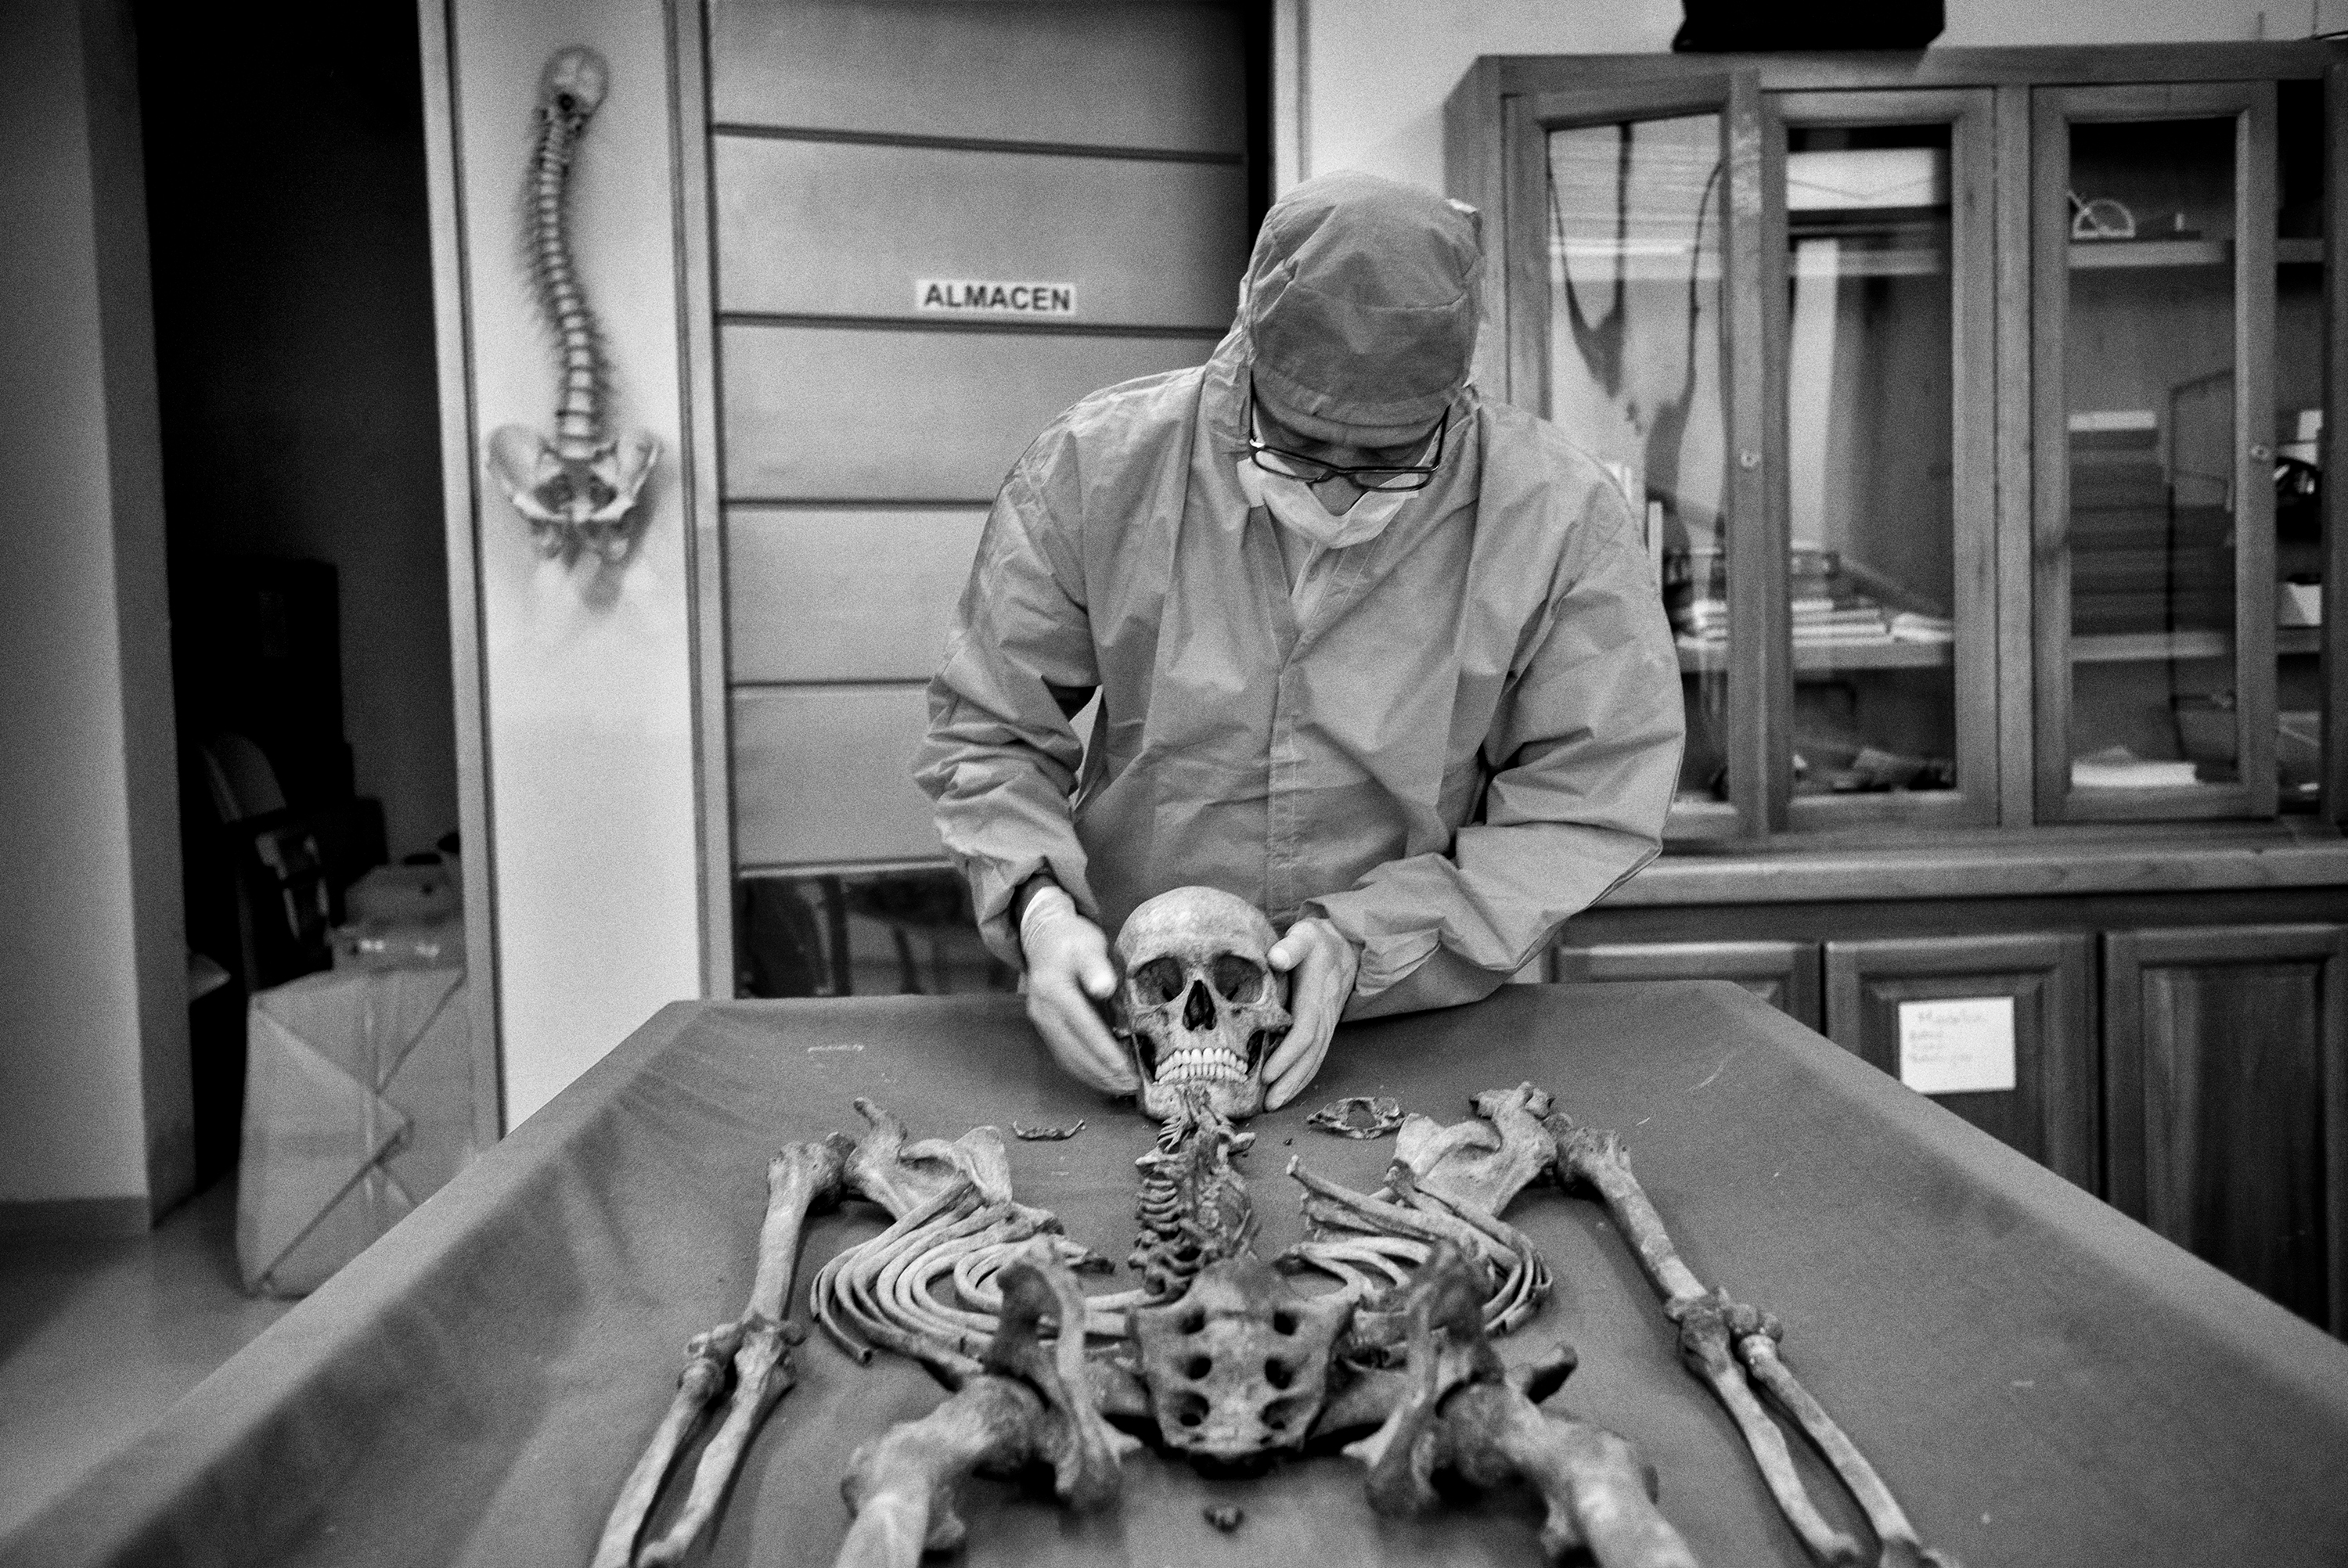 A Forensic investigator with the Colombian Prosecutor's office examines an unidentified corpse (NN). The human identification group from Antioquia, Colombia is comprised of four anthropologists, three dentists, two doctors, one assistant and a photographer. Since it was established, they have done 1325 exhumations of unidentified corpses, of which 653 have been identified and  returned to their families. There are more than 96,000 people missing in Colombia, Antioquia, Medellin,March 2015.